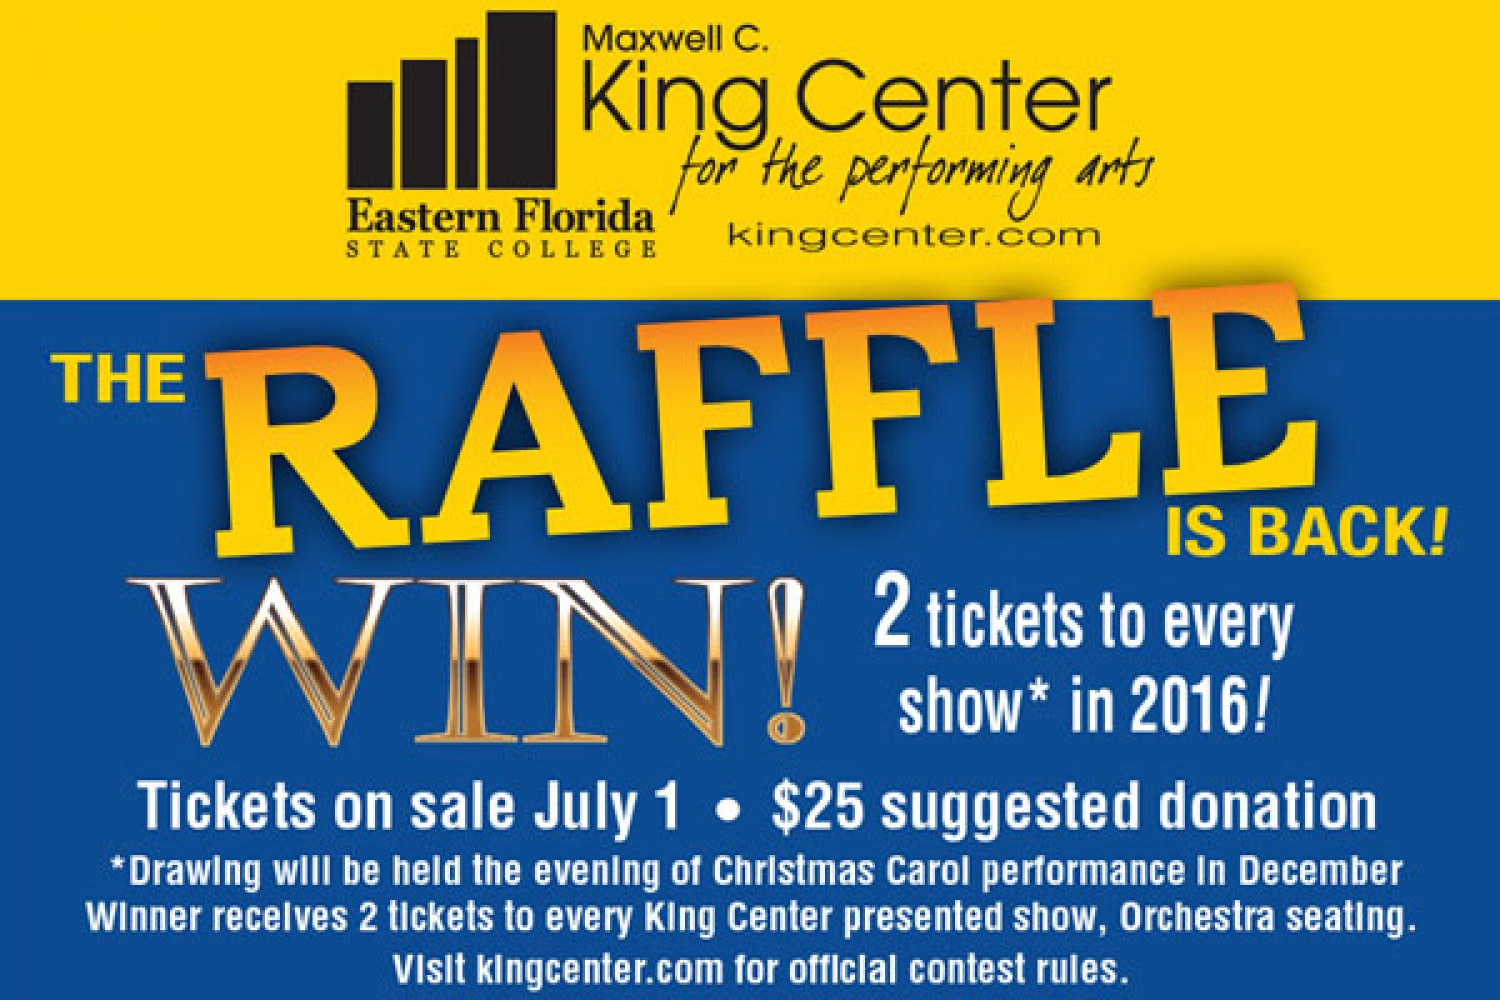 win two tickets raffle event item maxwell c king center for the win two tickets raffle